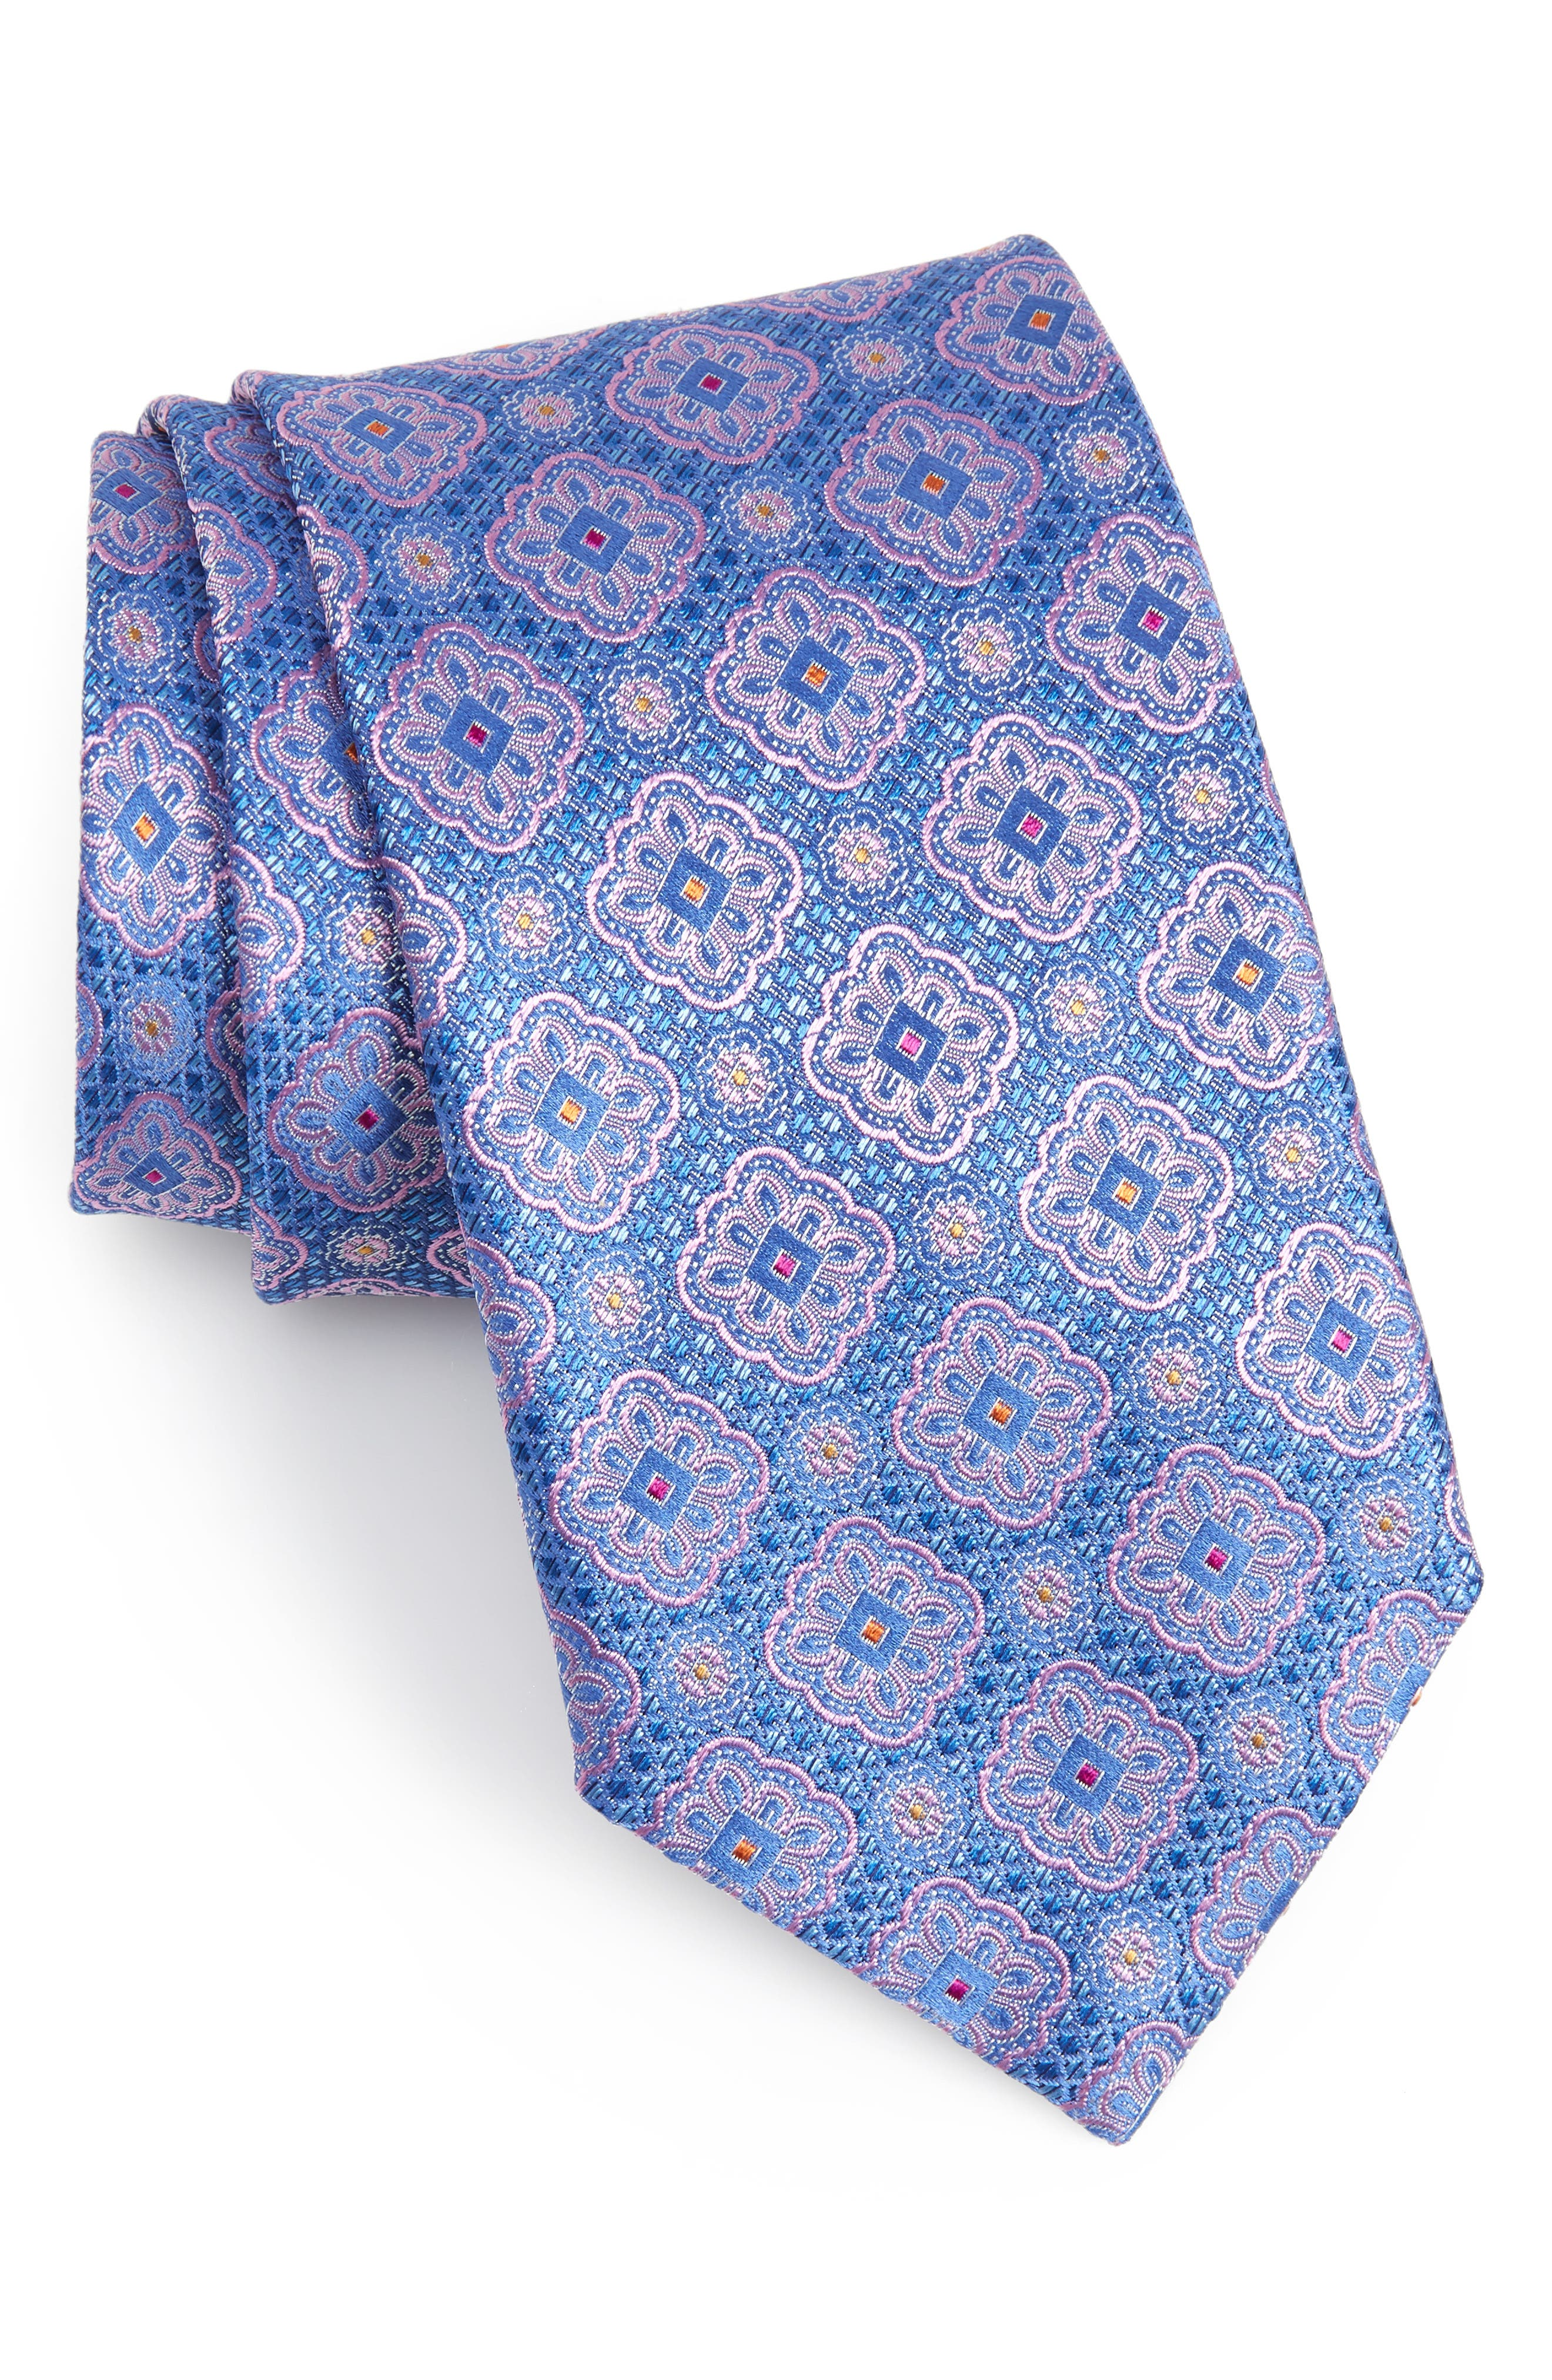 Medallion Silk Tie,                             Main thumbnail 1, color,                             Bright Blue